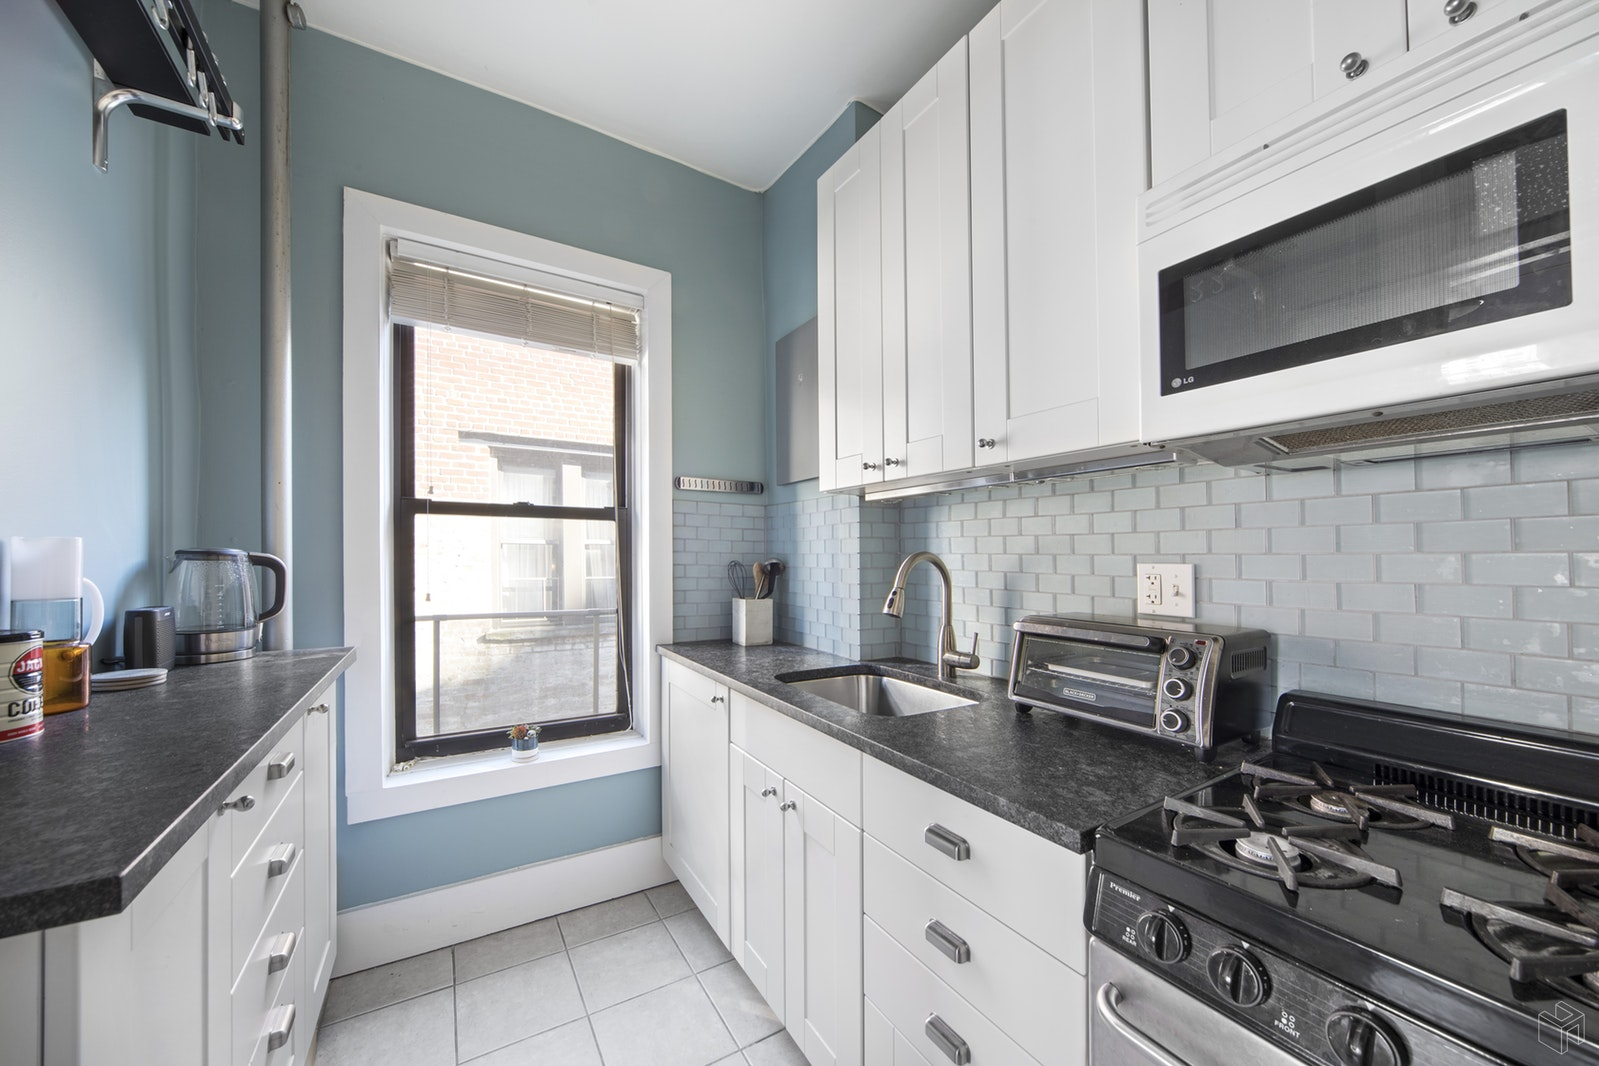 149 West 12th Street, West Village, NYC, 10011, $675,000, Property For Sale, Halstead Real Estate, Photo 1